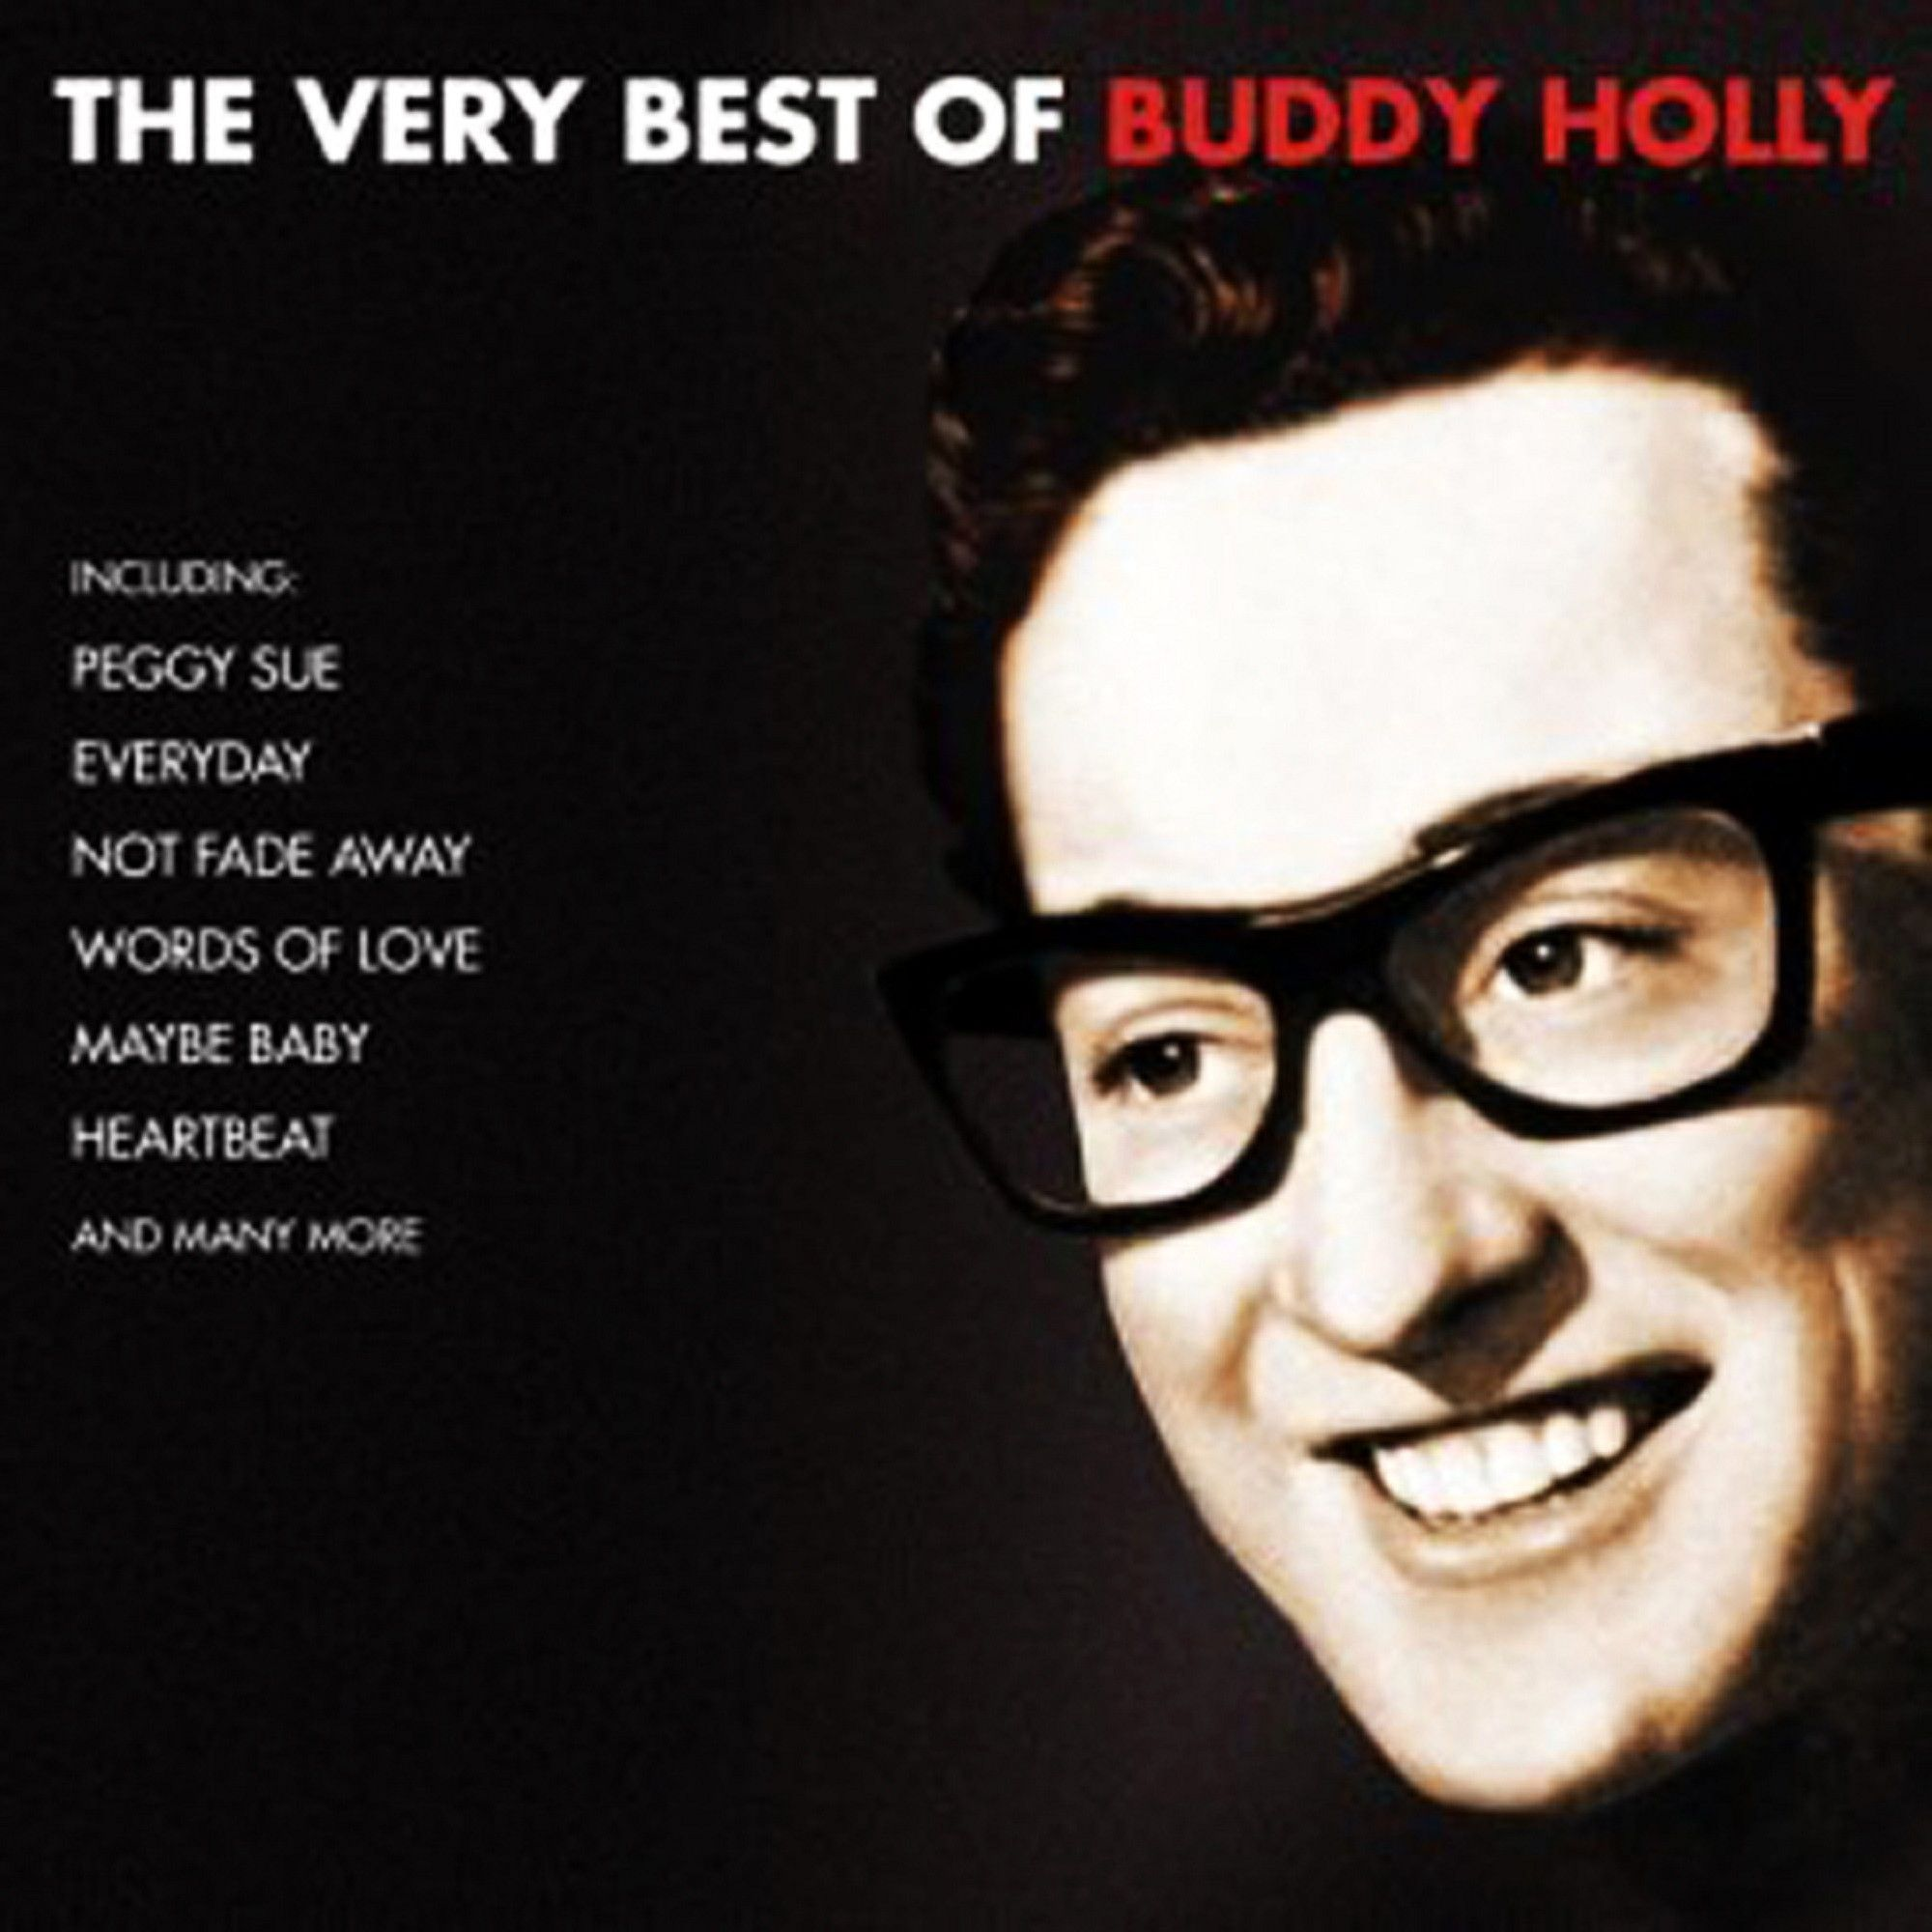 Buddy Holly - The Very Best Of Buddy Holly - 2 CD